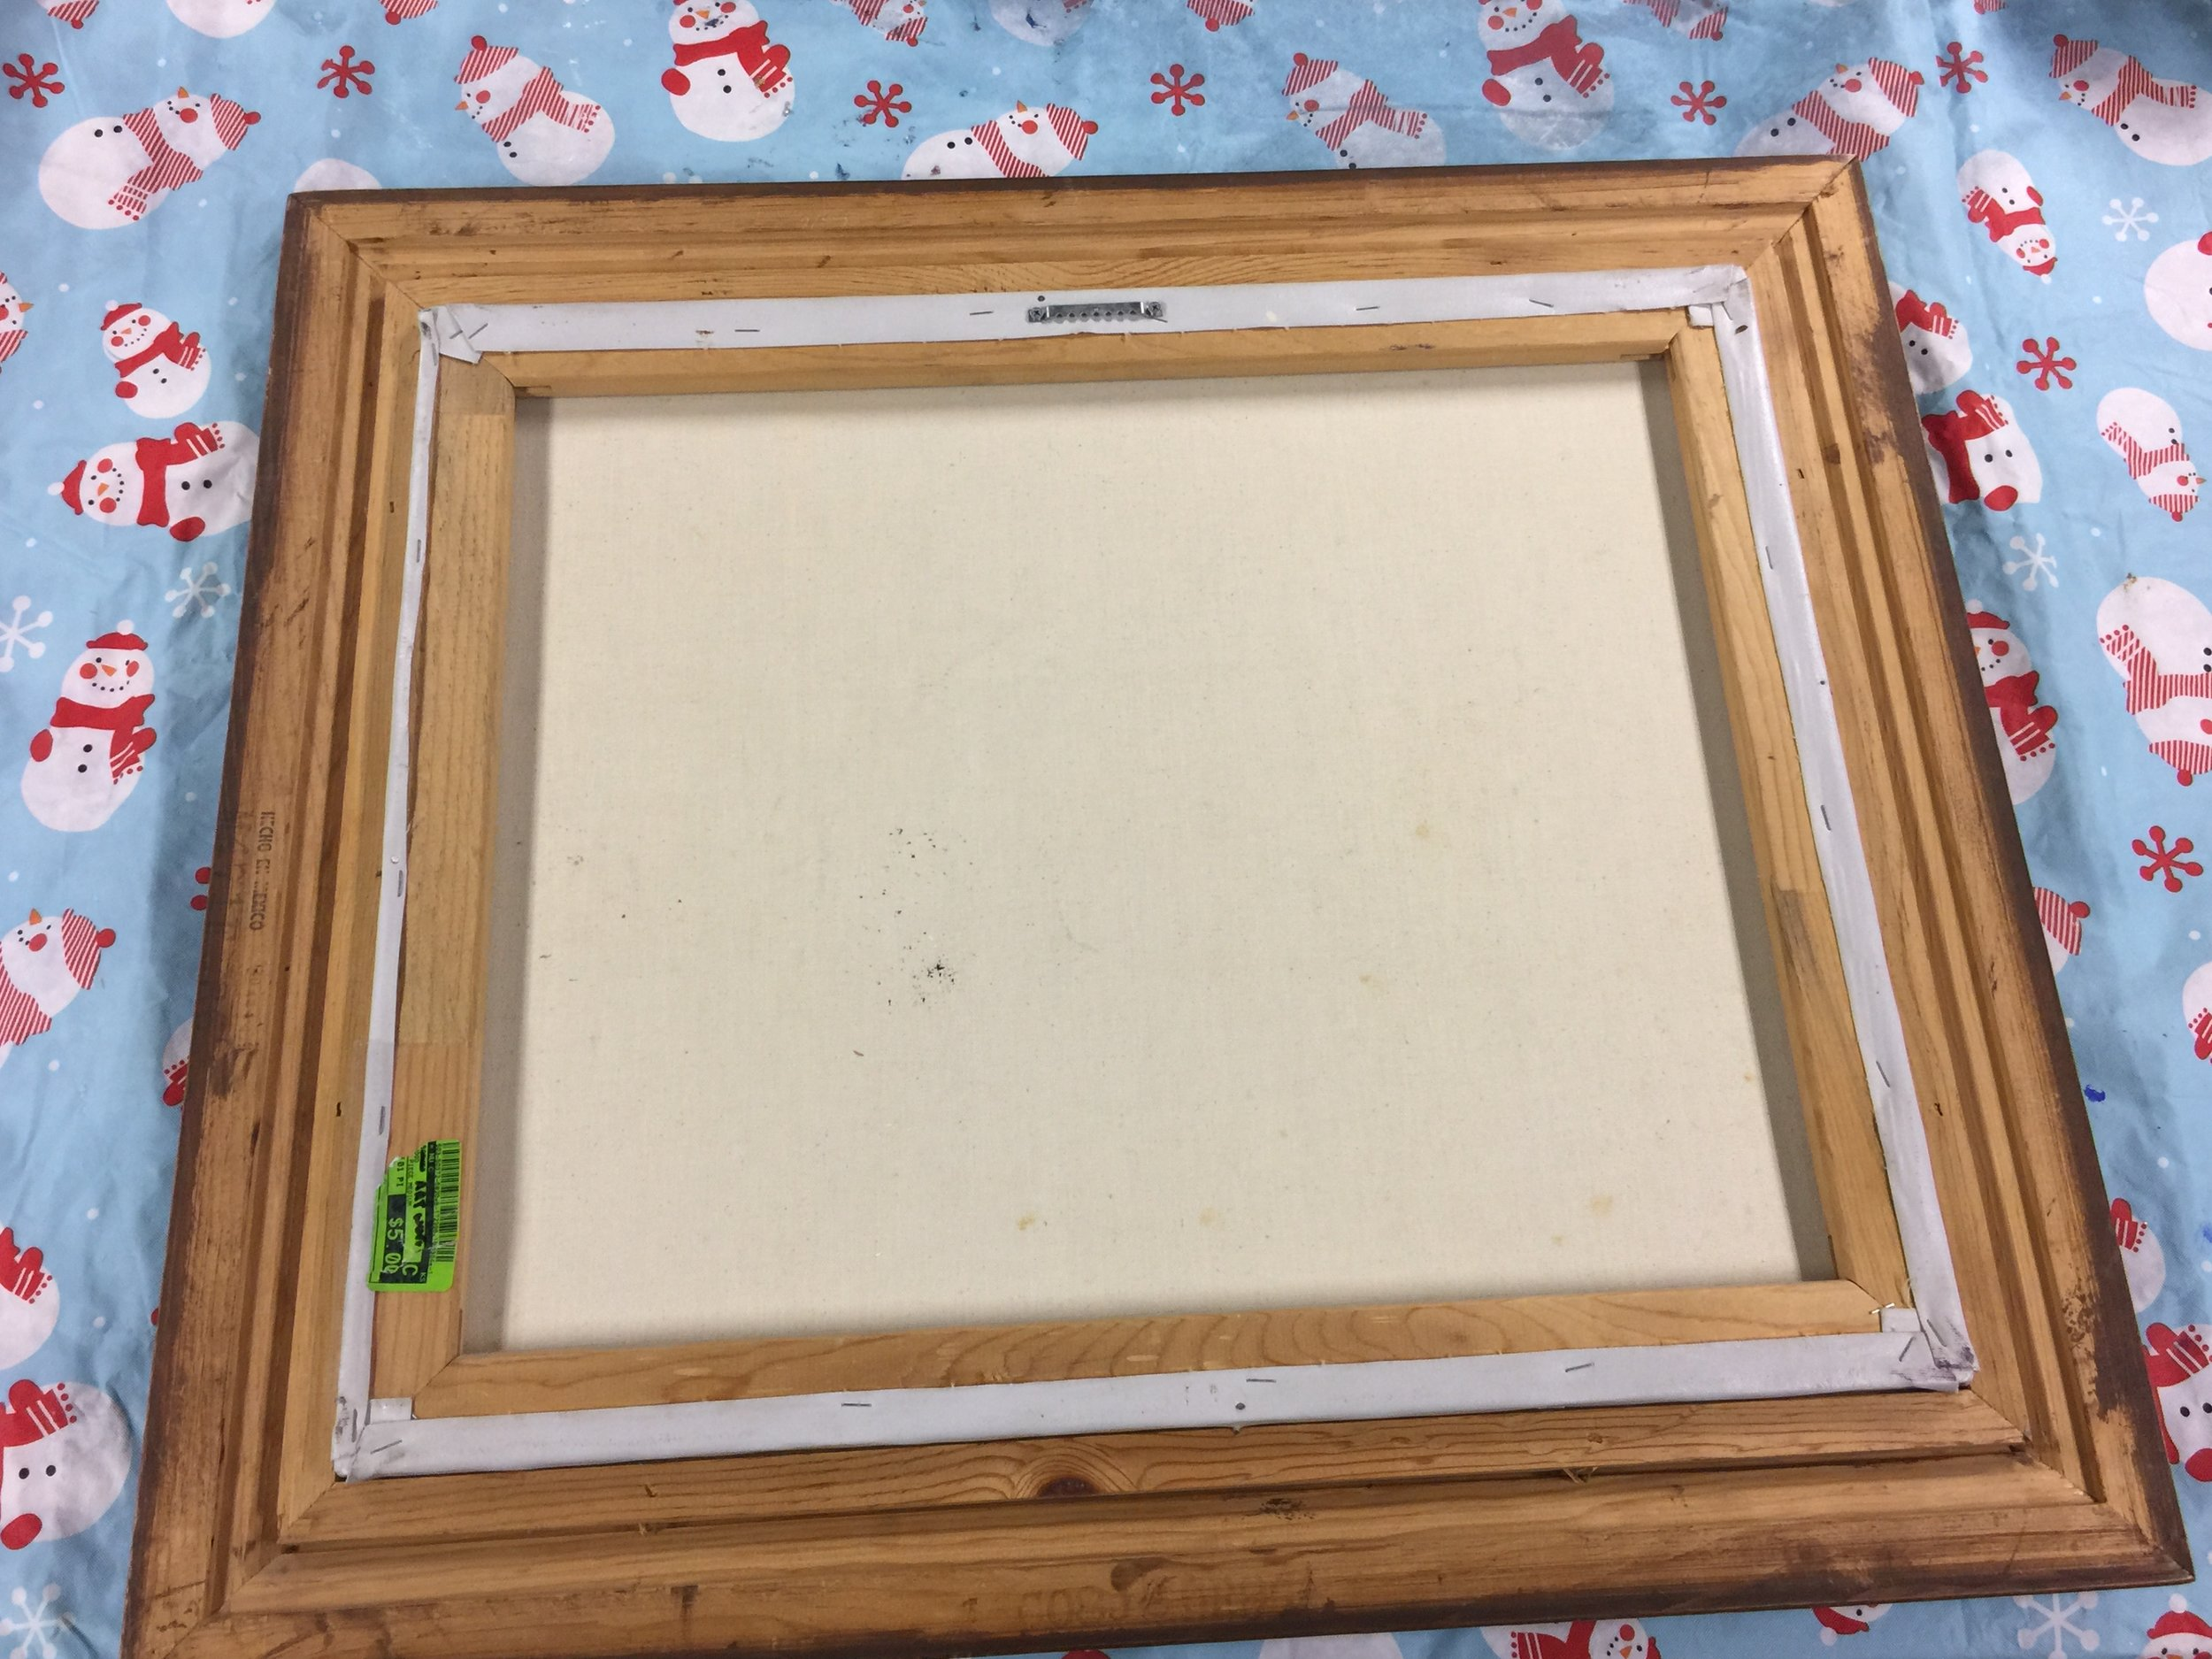 Remove Nails or Staples on Canvas